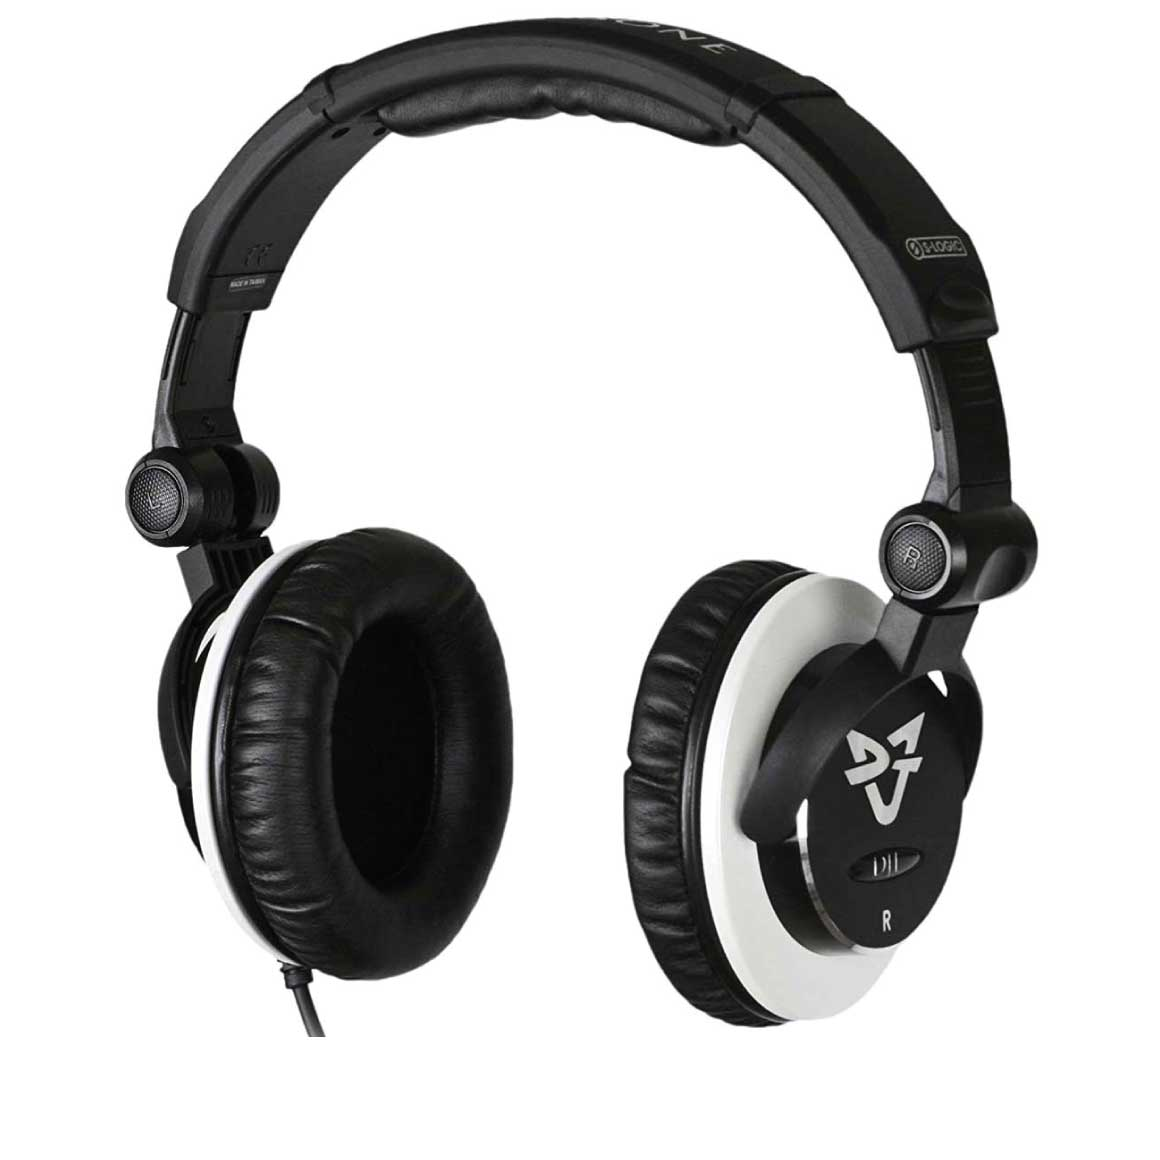 Headphone-Zone-https://www.headphonezone.in/products/ultrasone-dj-1